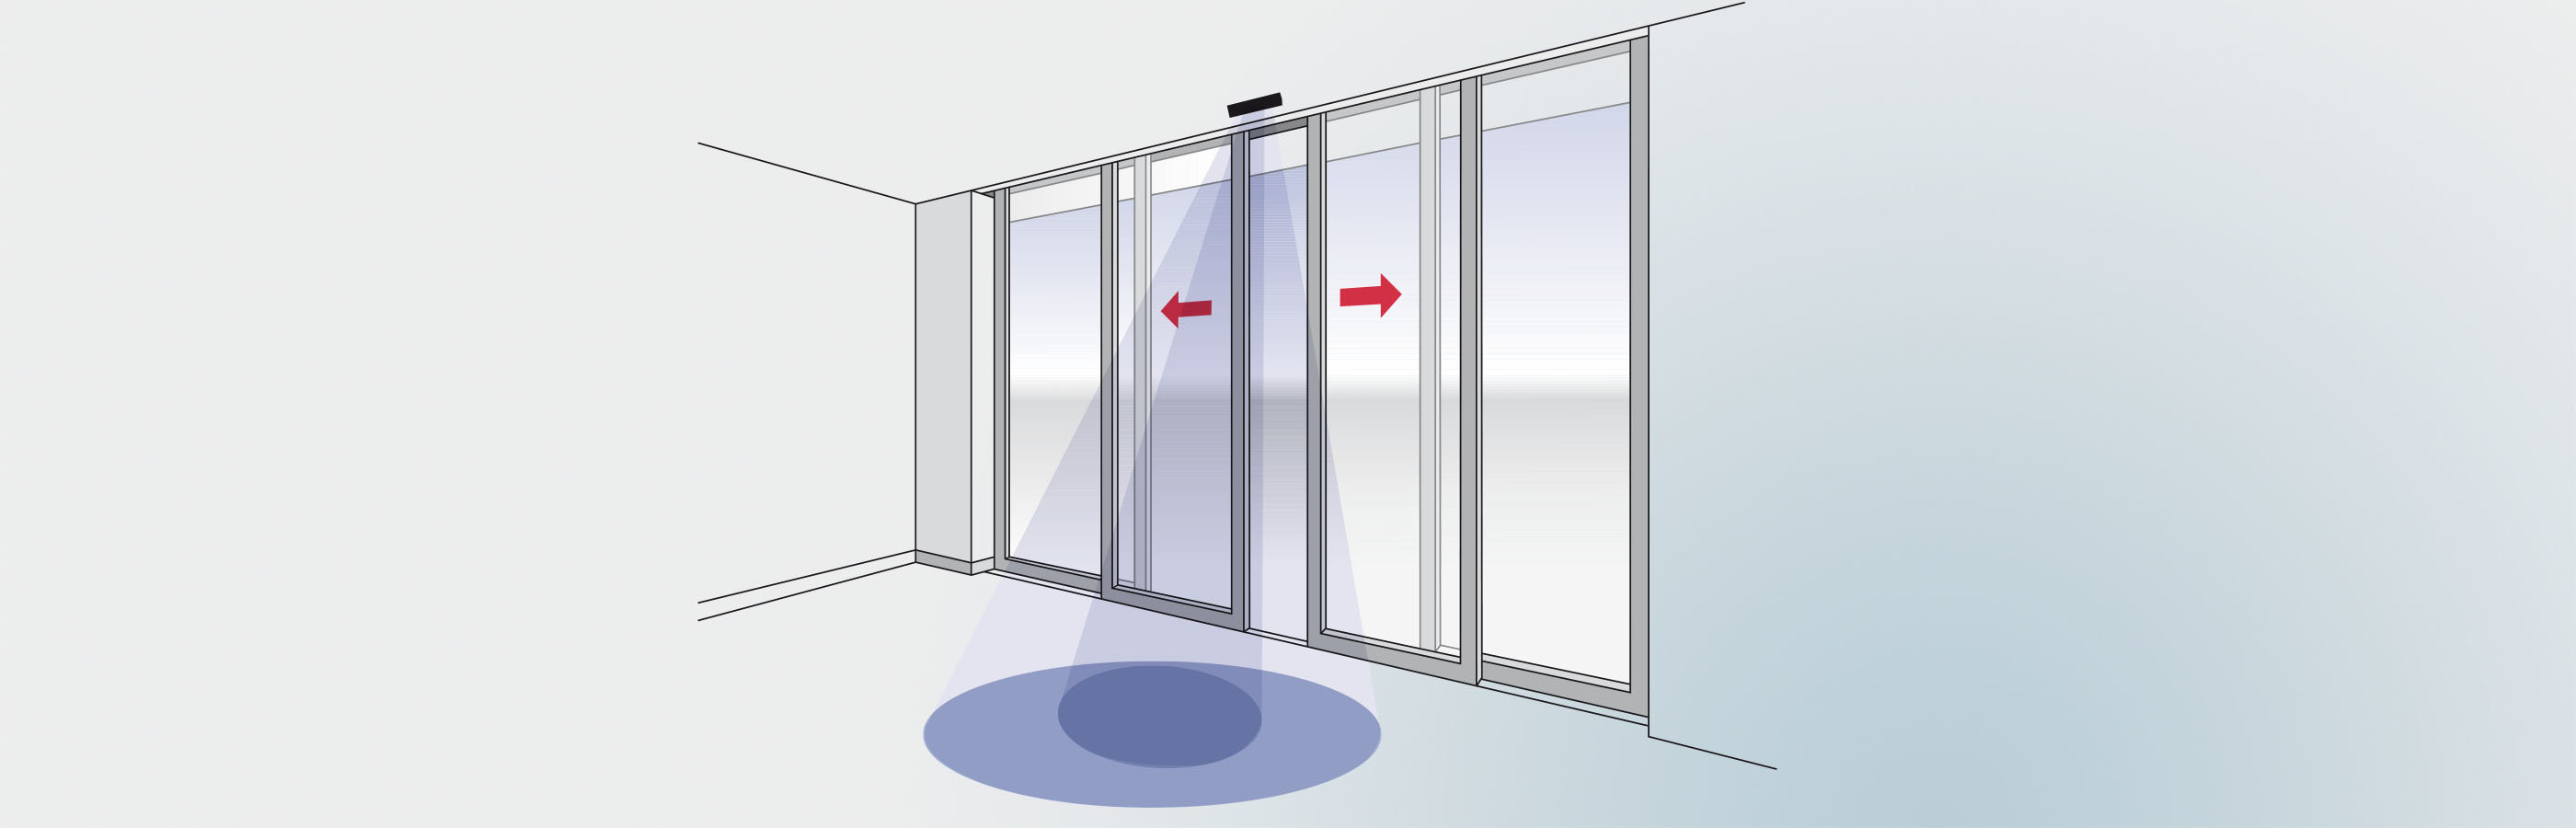 RK 30 microwave motion detector on a sliding door